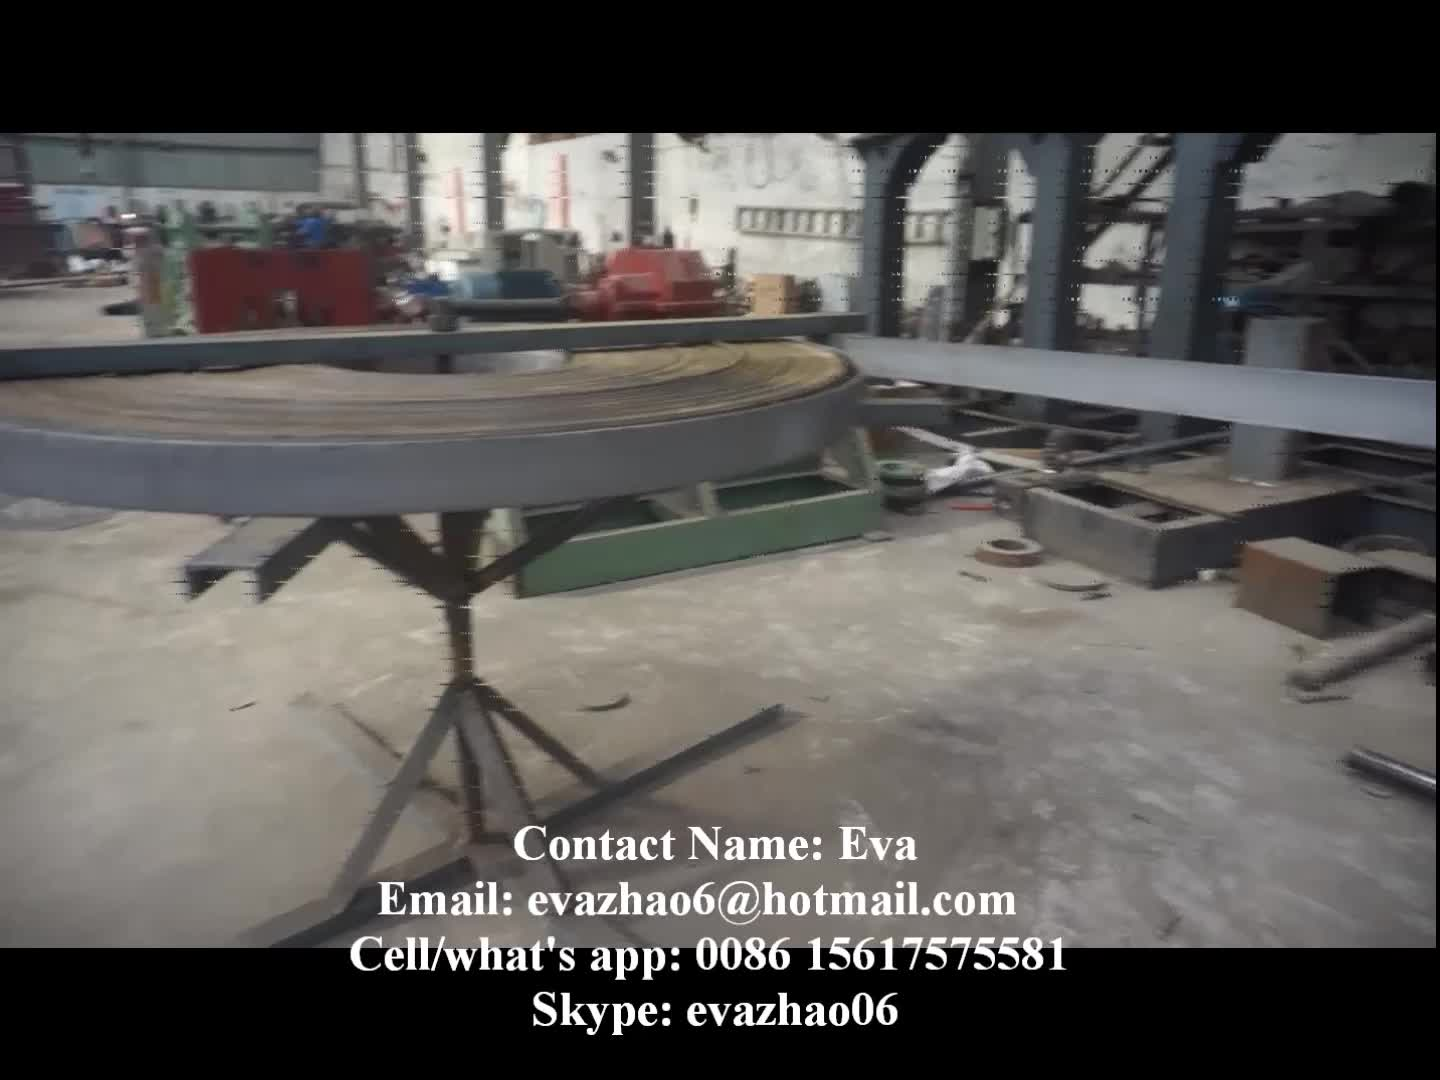 High Selling Auger Blade Cold Rolling Mill Machine Skype Evazhao06 Whats  App 0086 15617575581 - Buy Auger Blade Cold Rolling Mill Machine,Screw  Blade